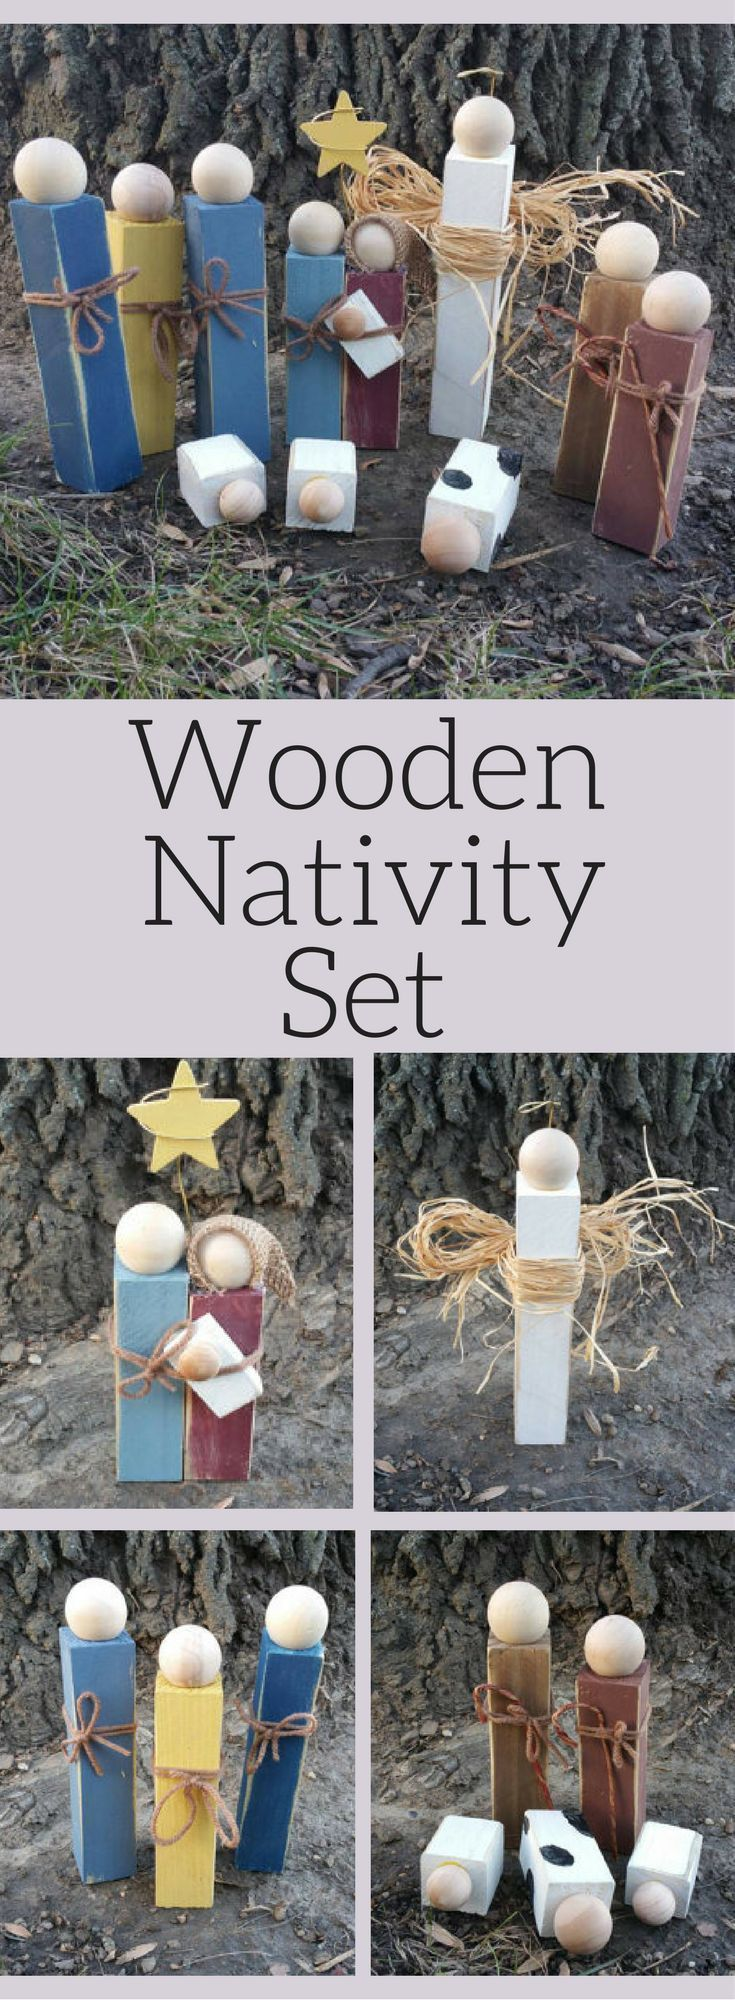 25+ unique Nativity scenes ideas on Pinterest | Christmas ...